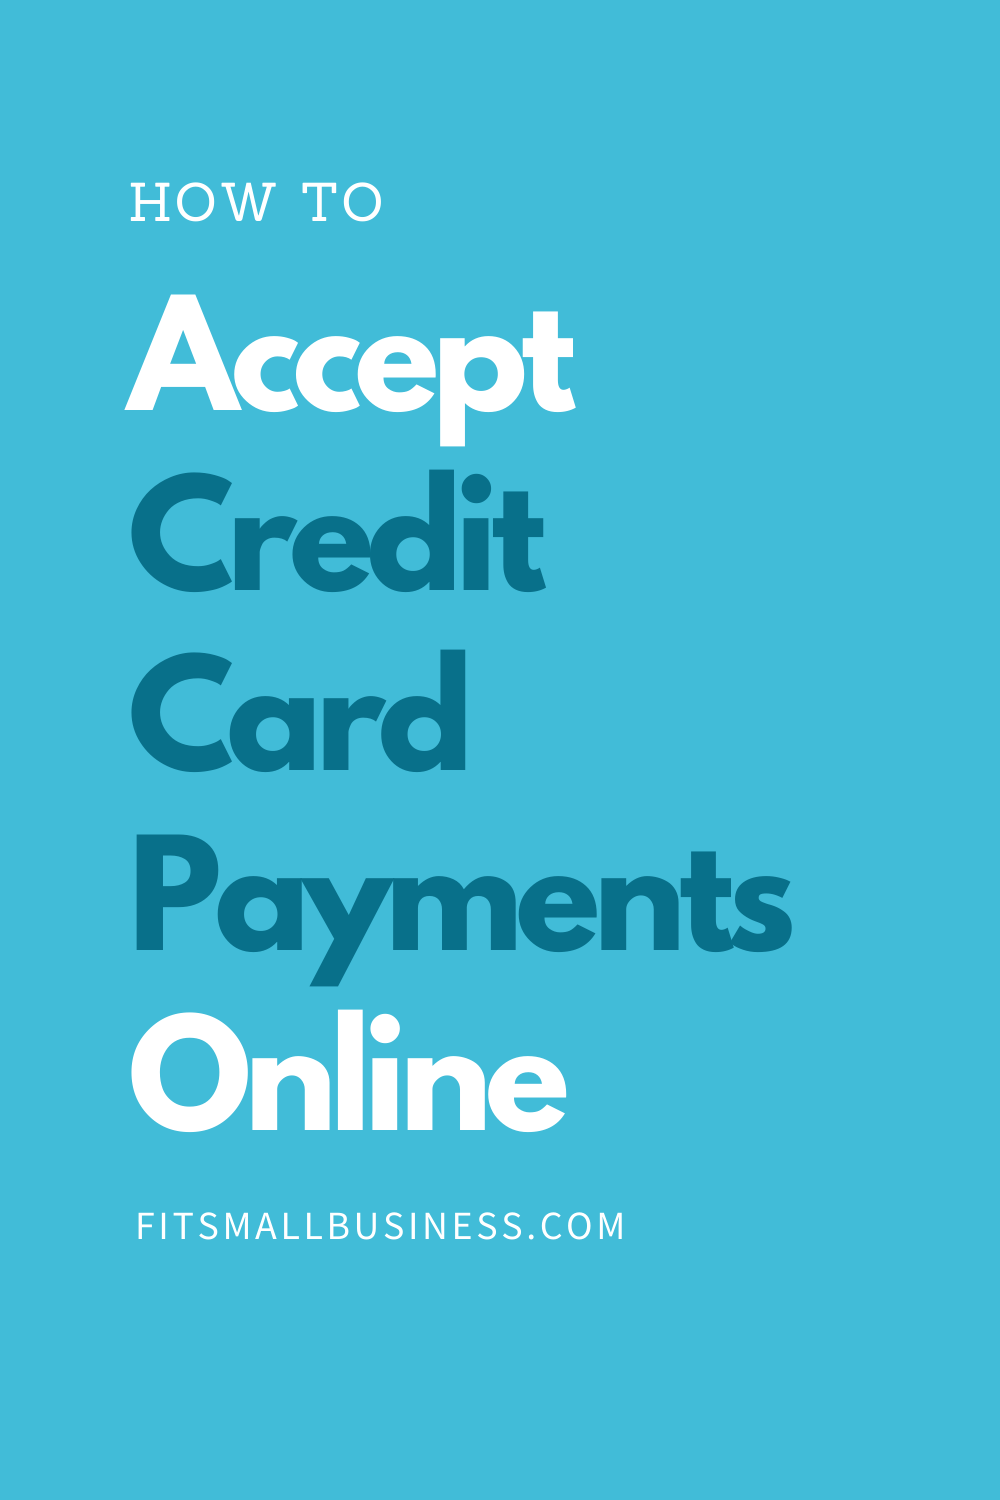 How To Accept Credit Cards Online Business Credit Cards Credit Card Fit Small Business